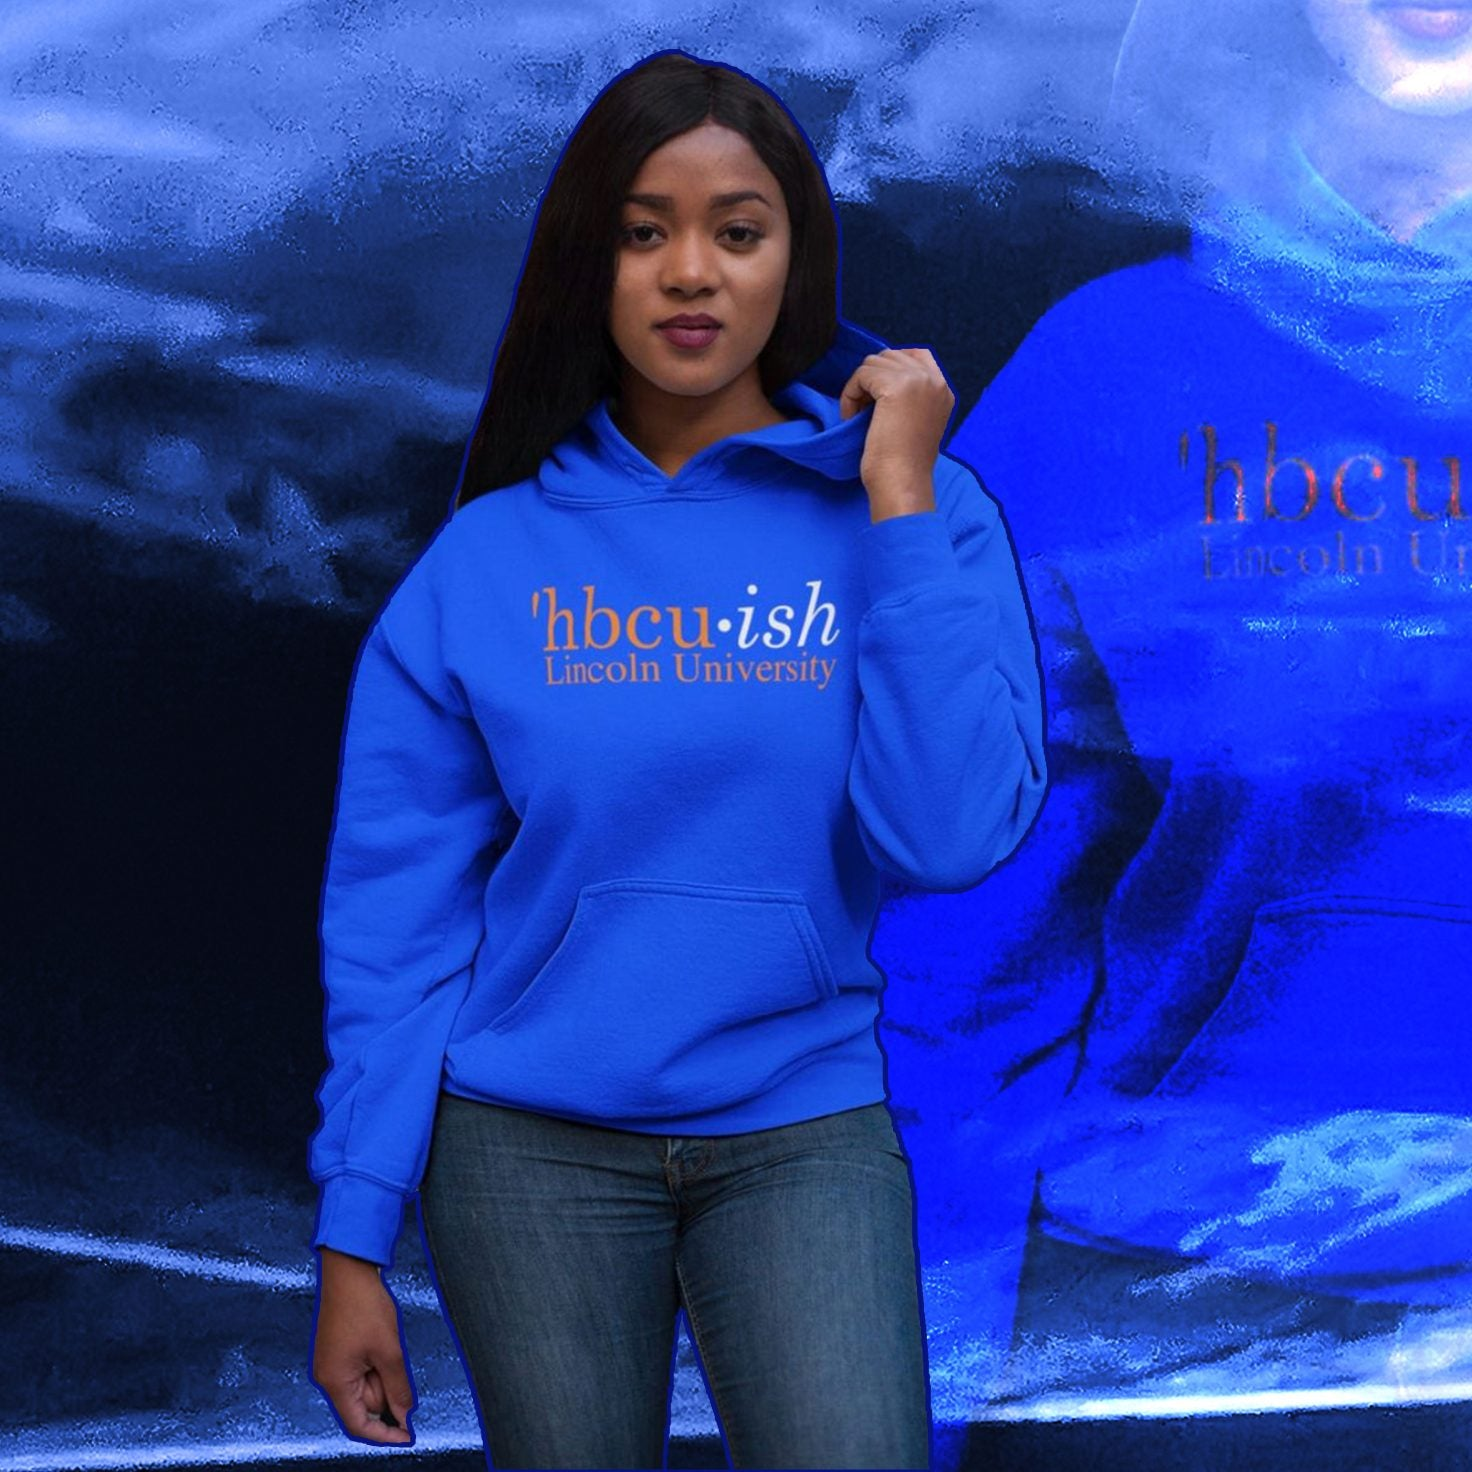 Rep Your HBCU With These Dope Sweatshirts For Homecoming